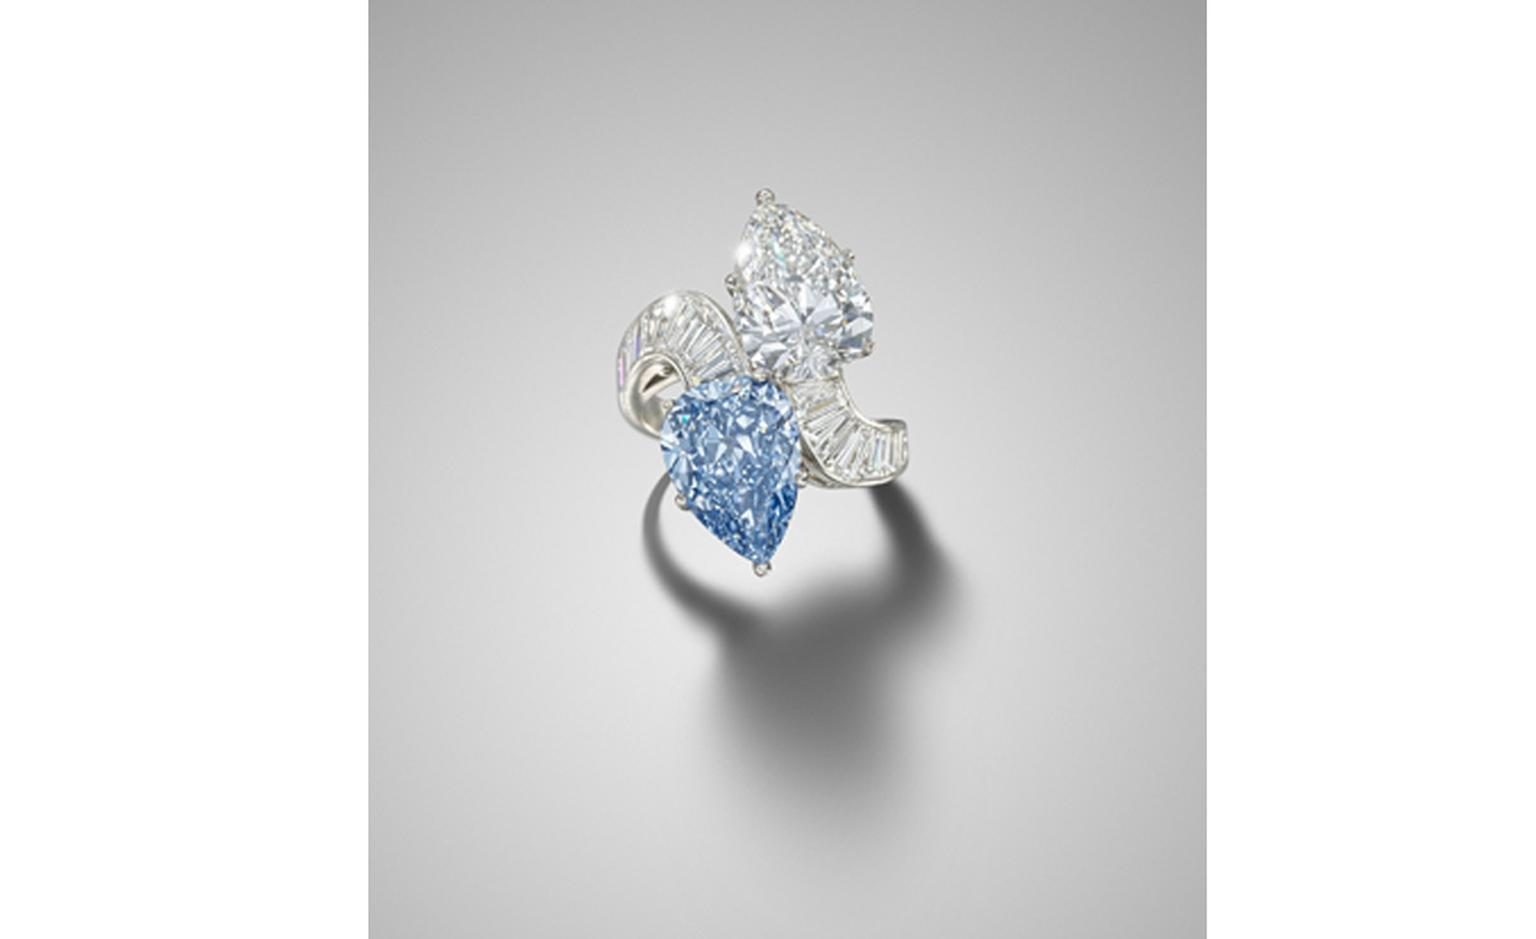 Lot 200. A diamond and blue diamond crossover ring,  by Bulgari. Estimate £600,000 - 800,000. SOLD FOR £1,889,250.